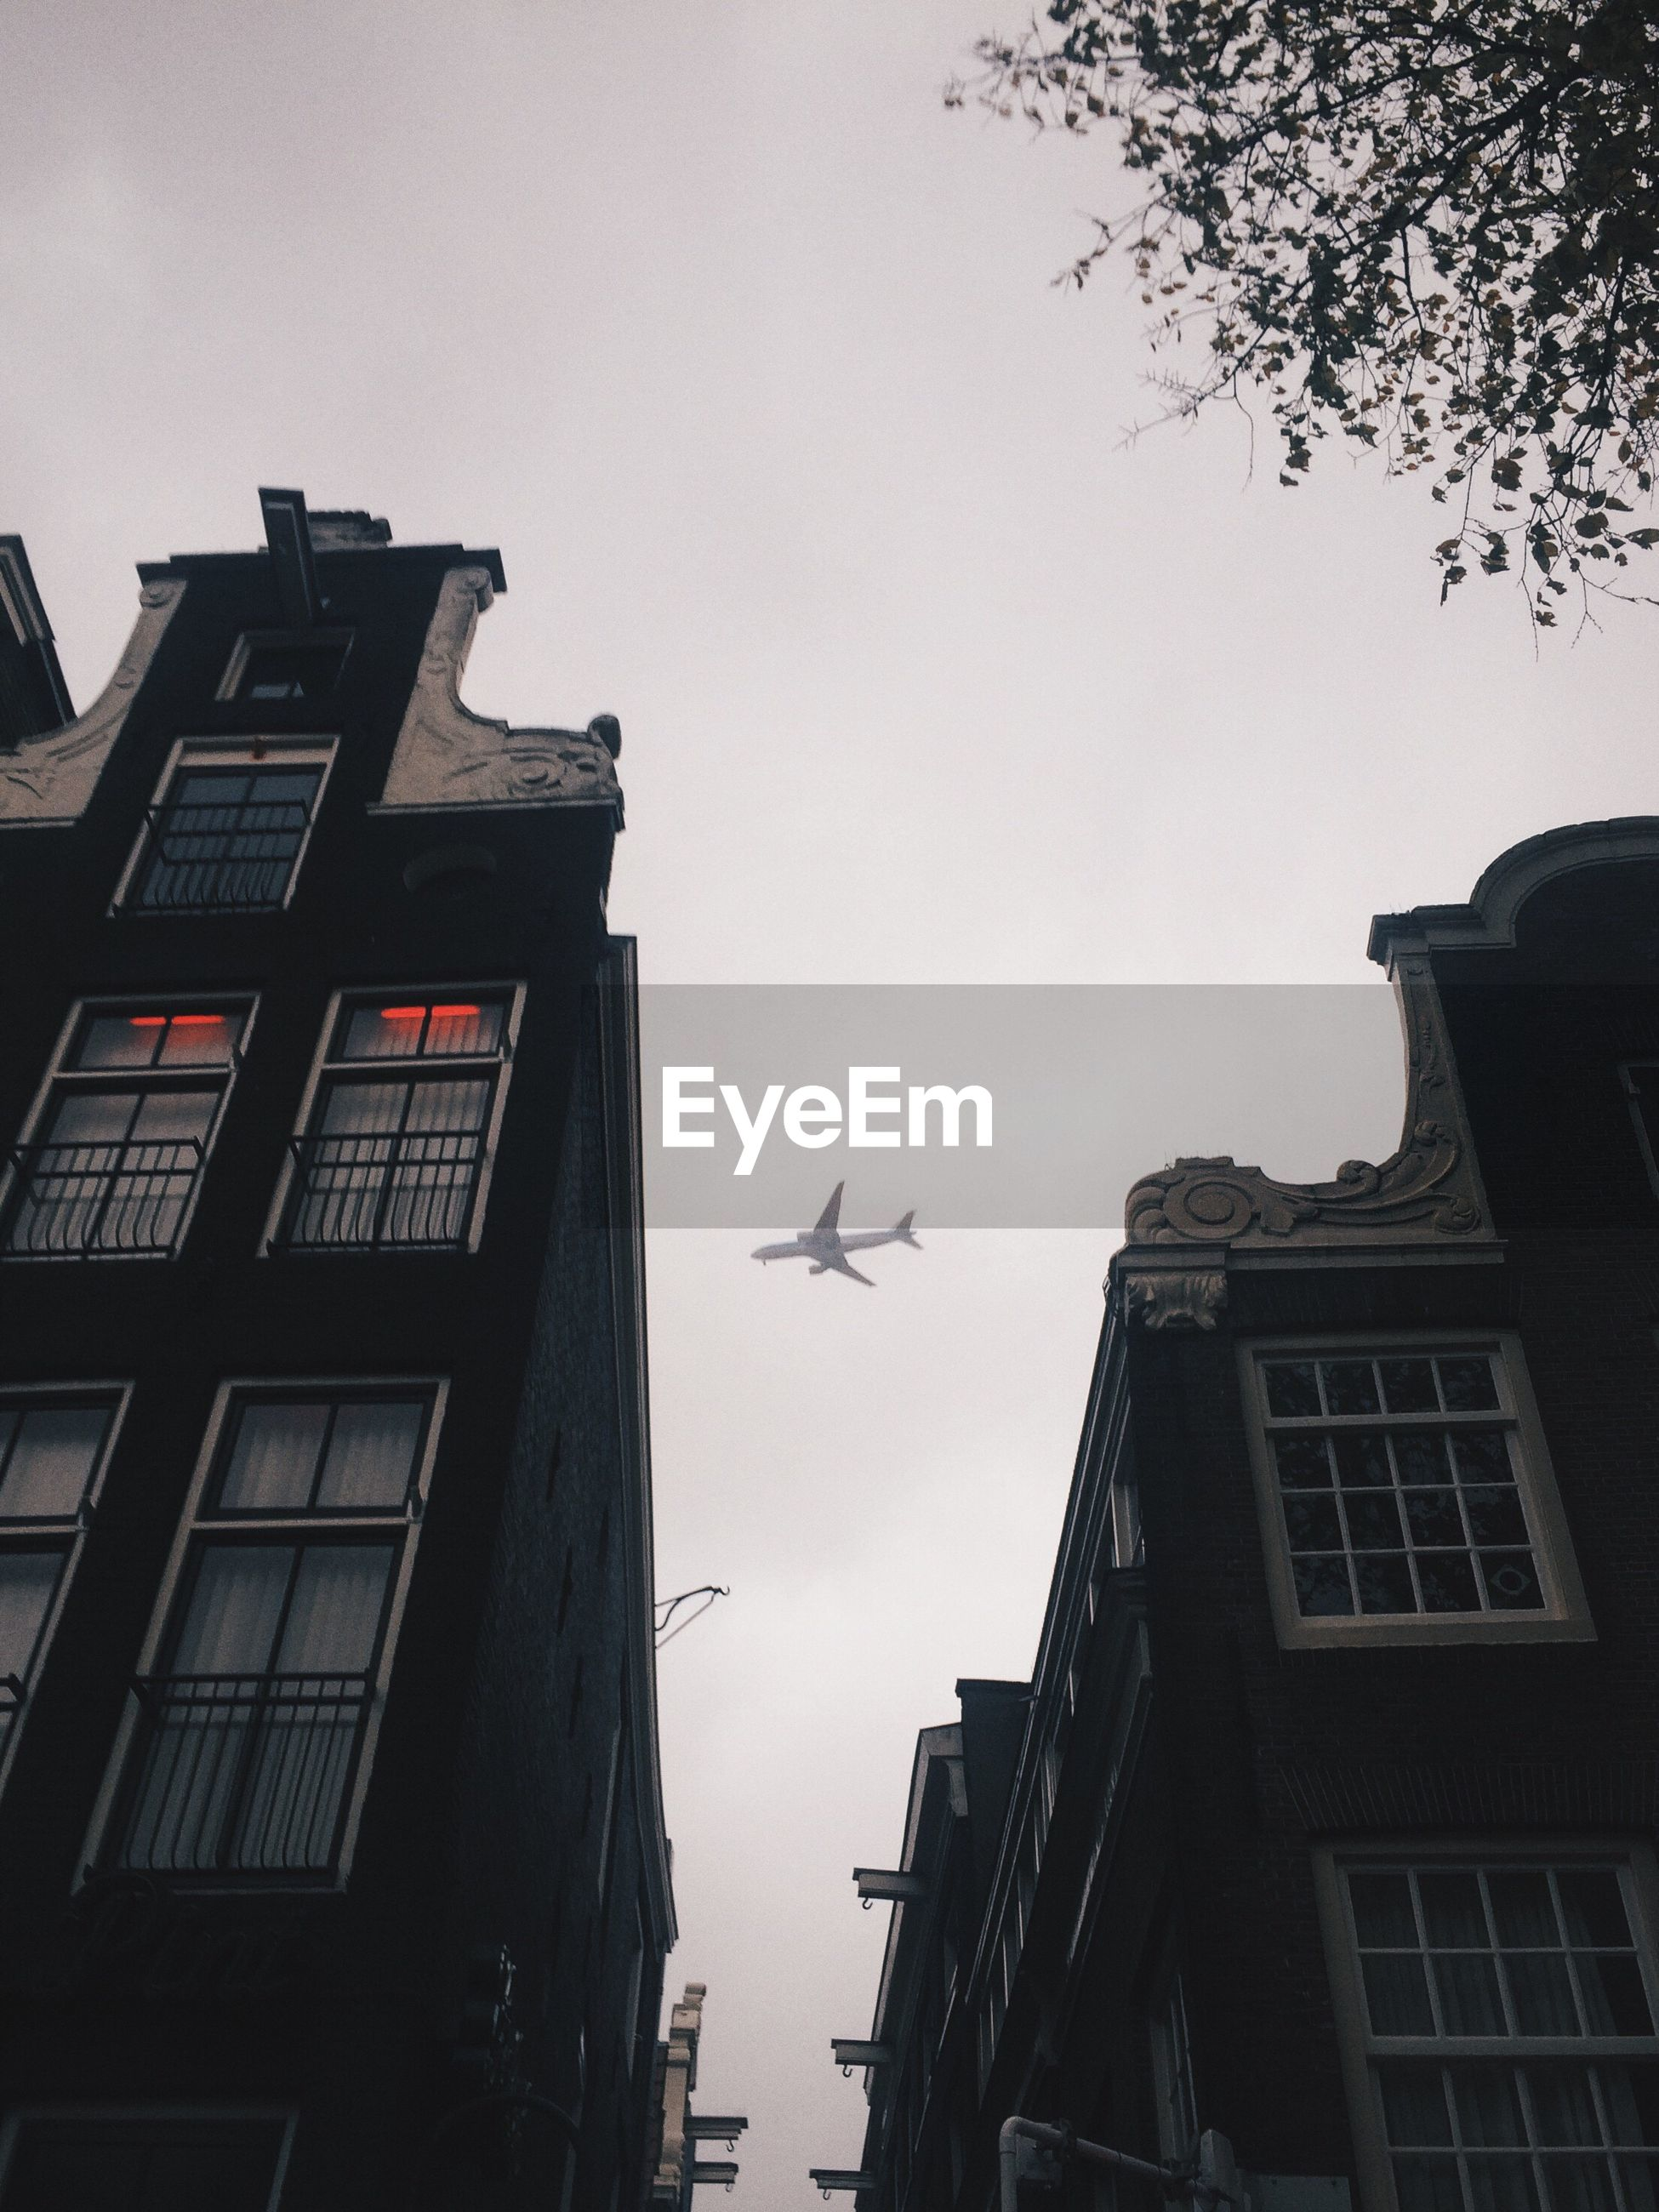 LOW ANGLE VIEW OF AIRPLANE FLYING ABOVE BUILDINGS